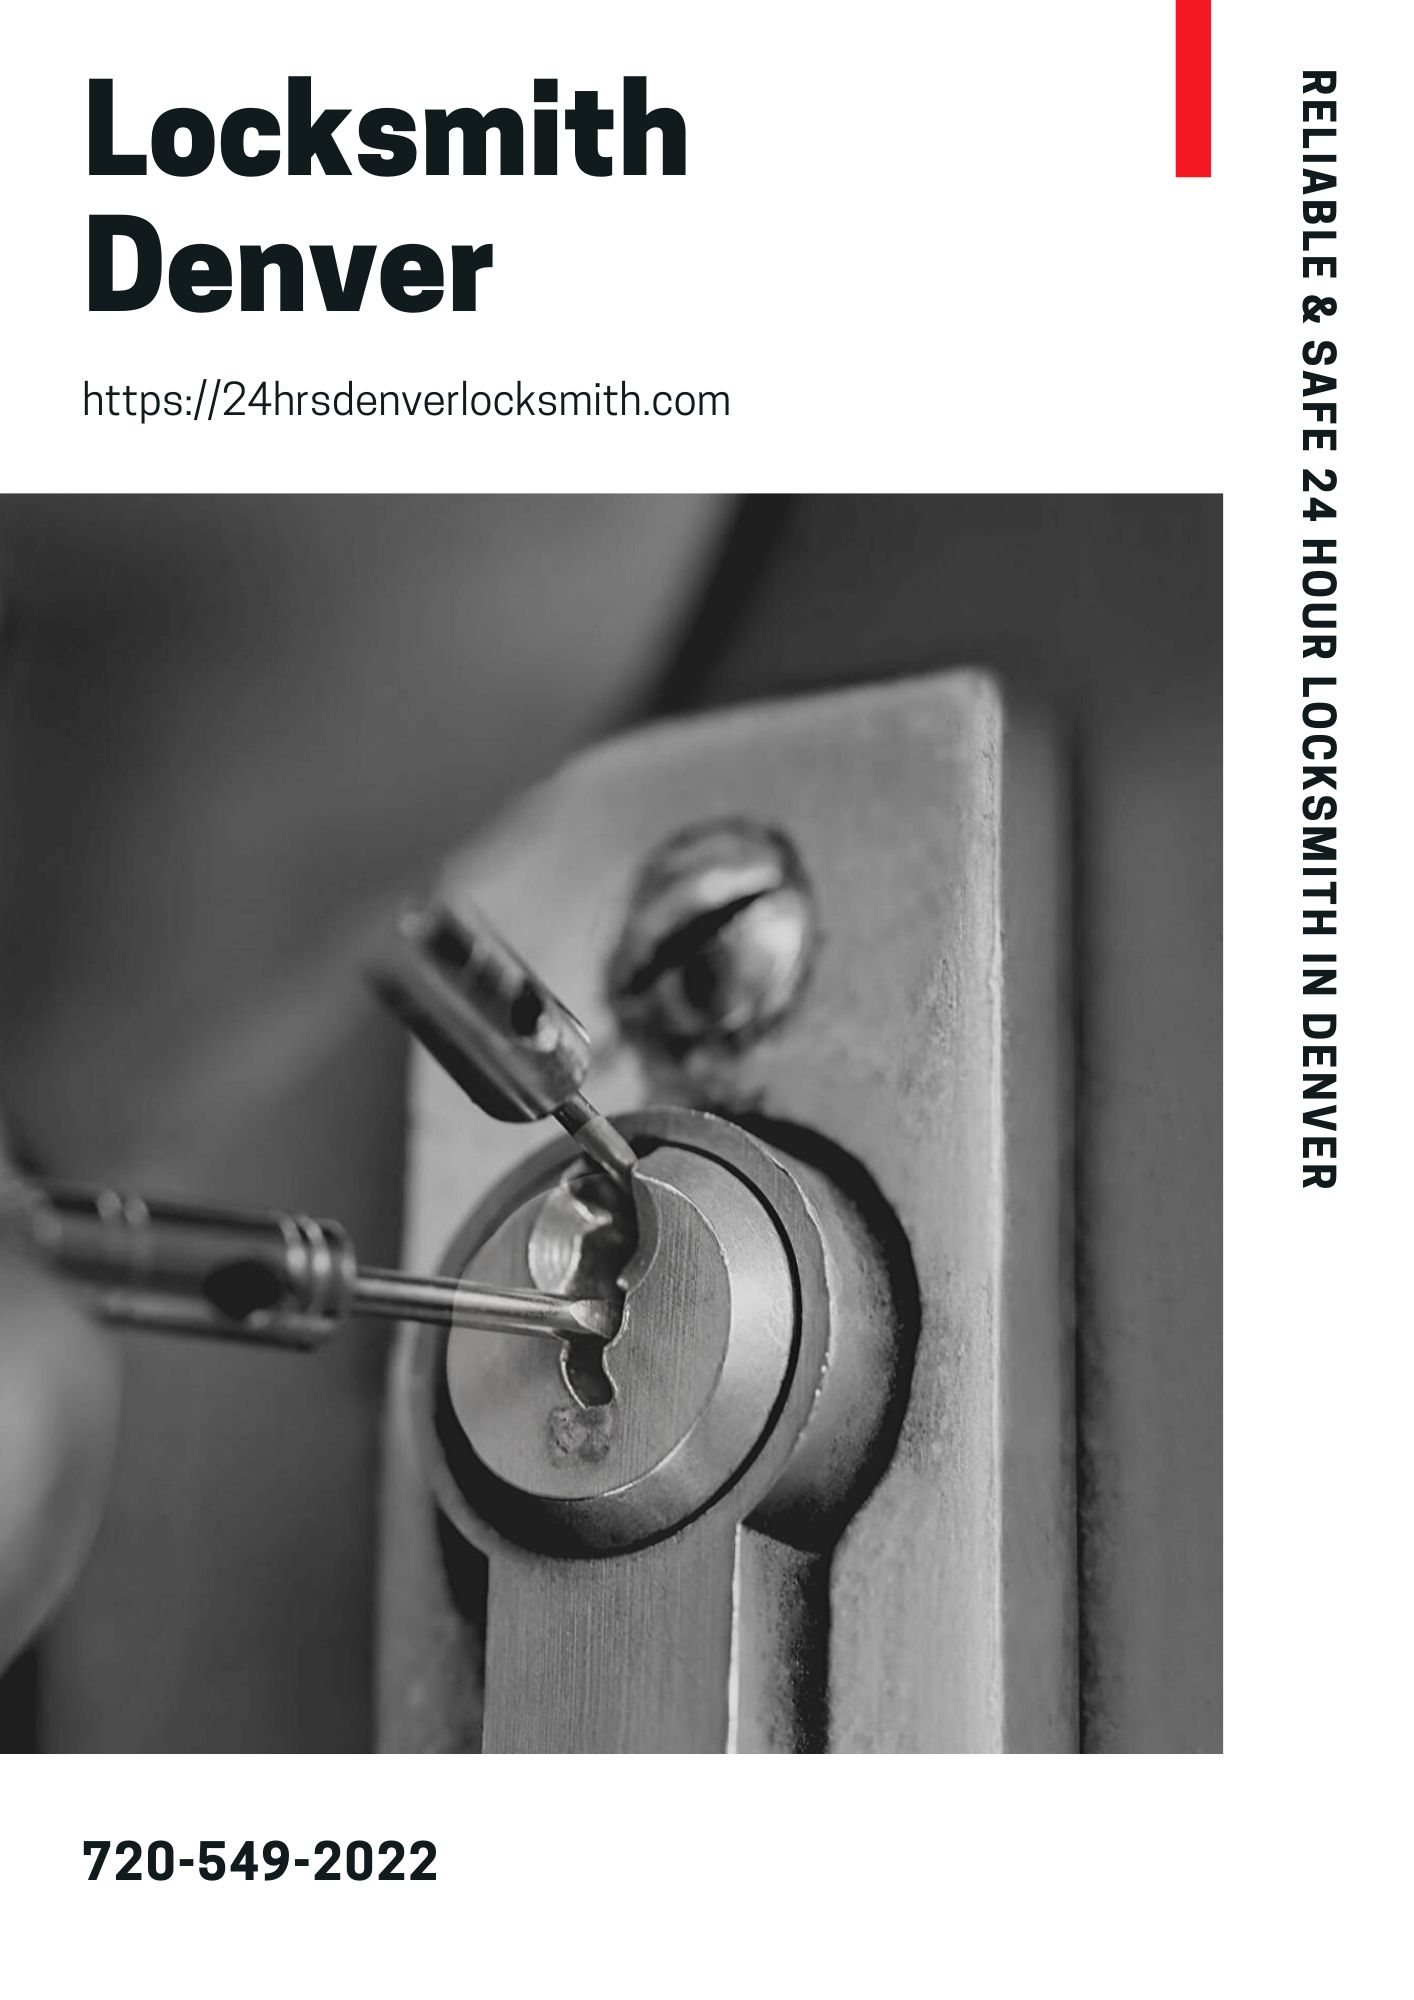 Are you looking for 24hour emergency locksmith services